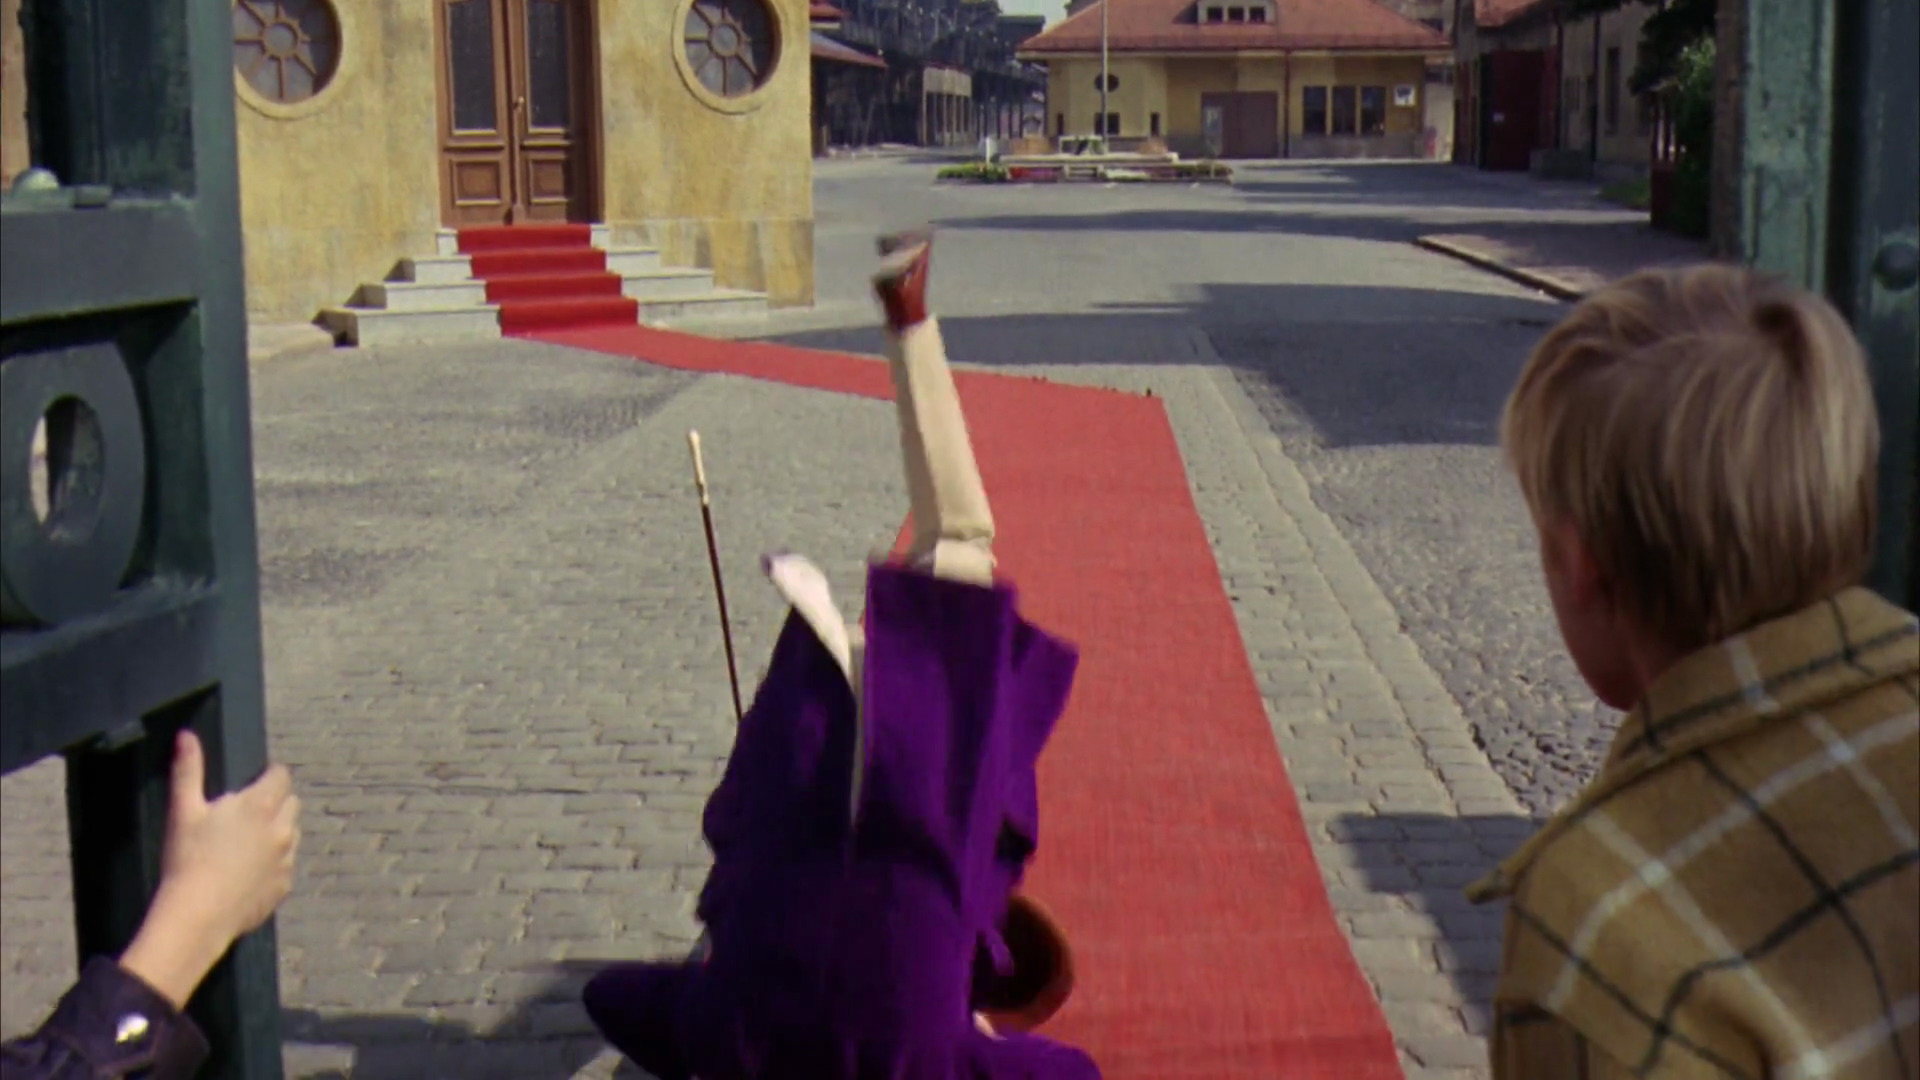 willy-wonka-movie-screencaps.com-5155.jpg